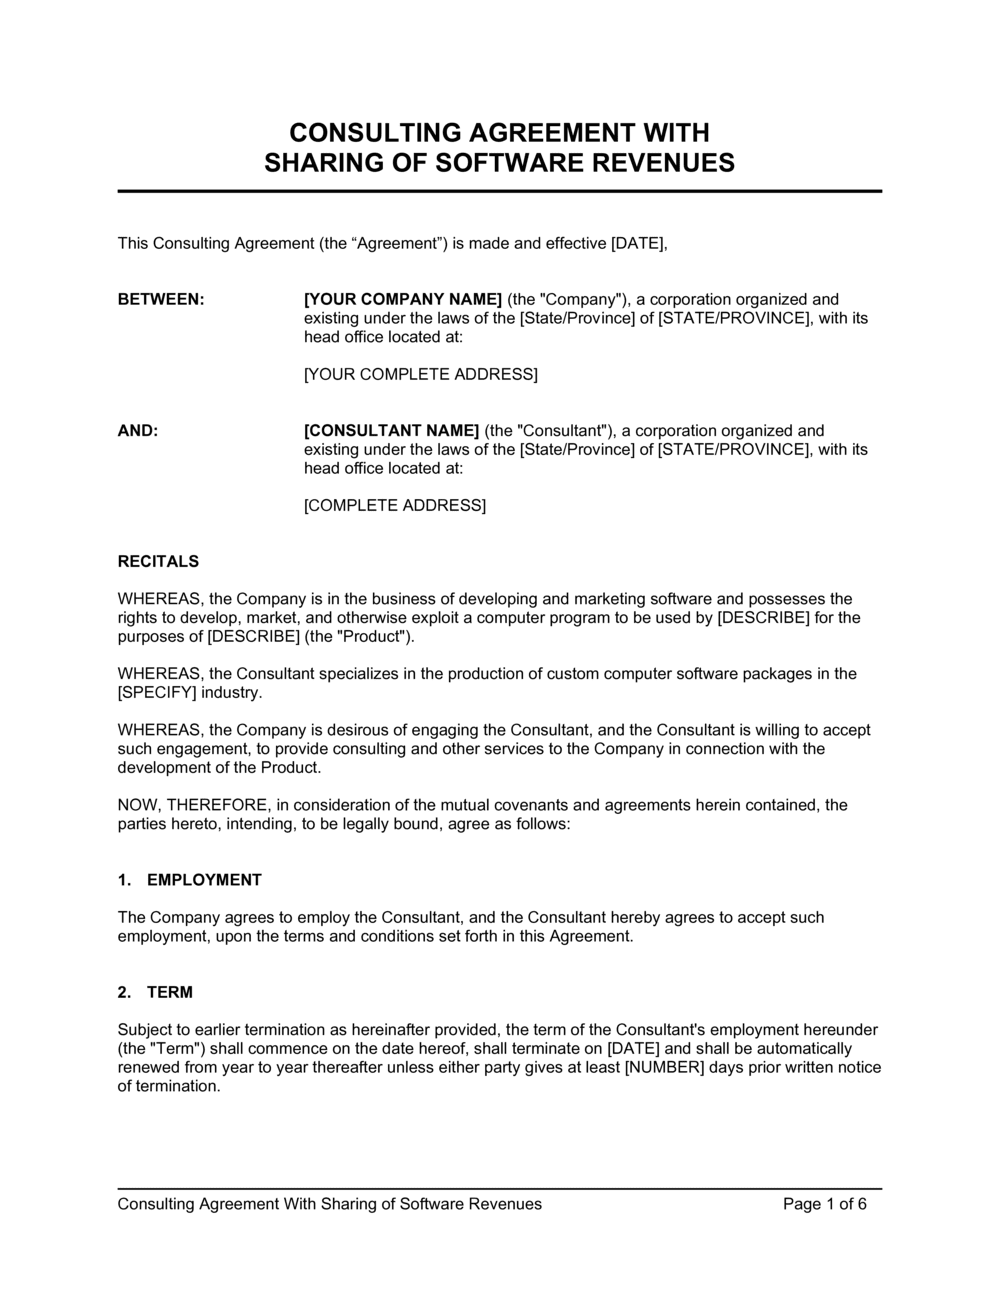 Business-in-a-Box's Consulting Agreement with Sharing of Software Revenues Template